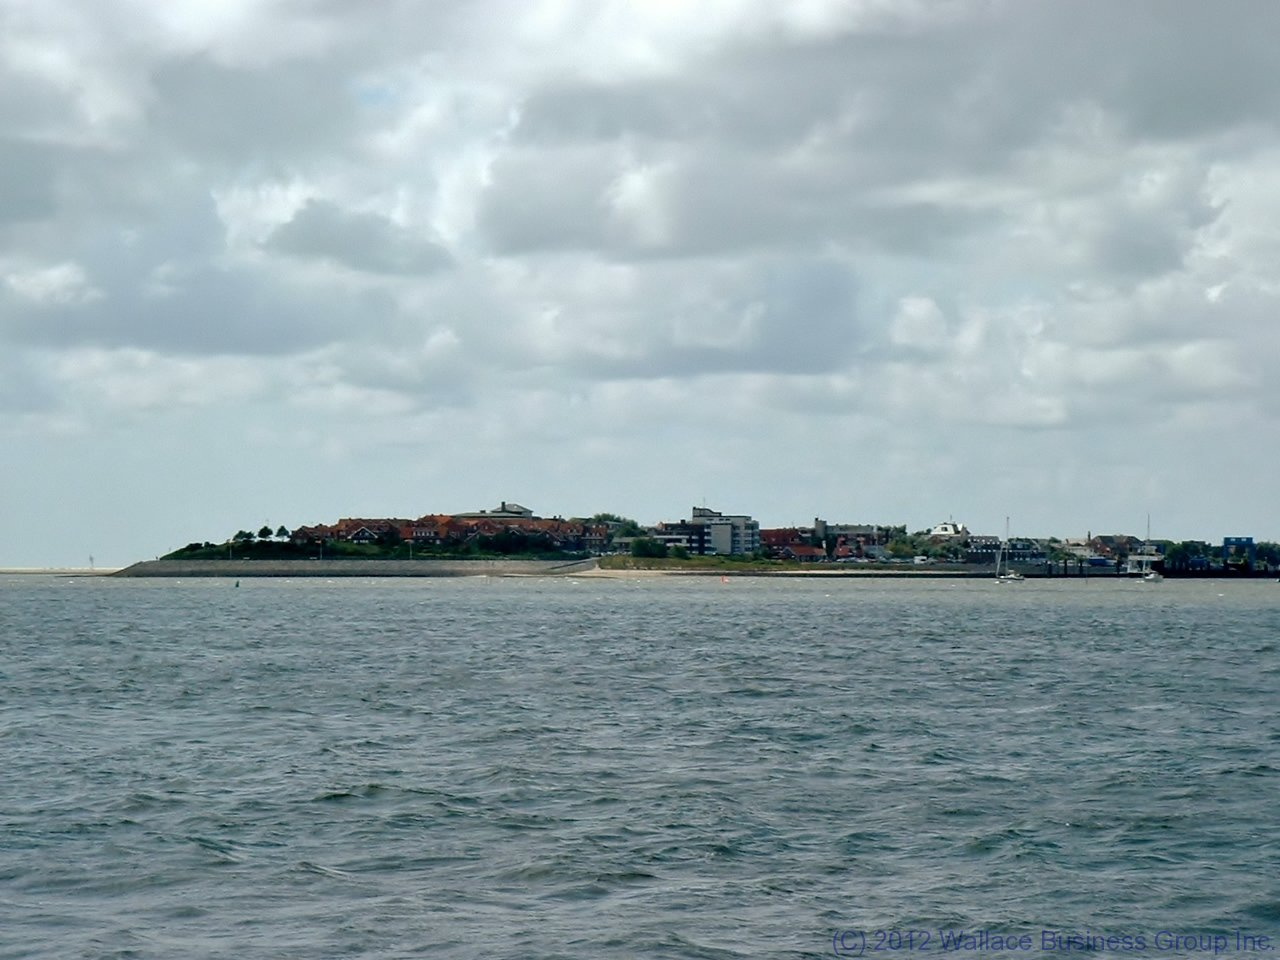 Wittdün, Amrum\'s main settlement